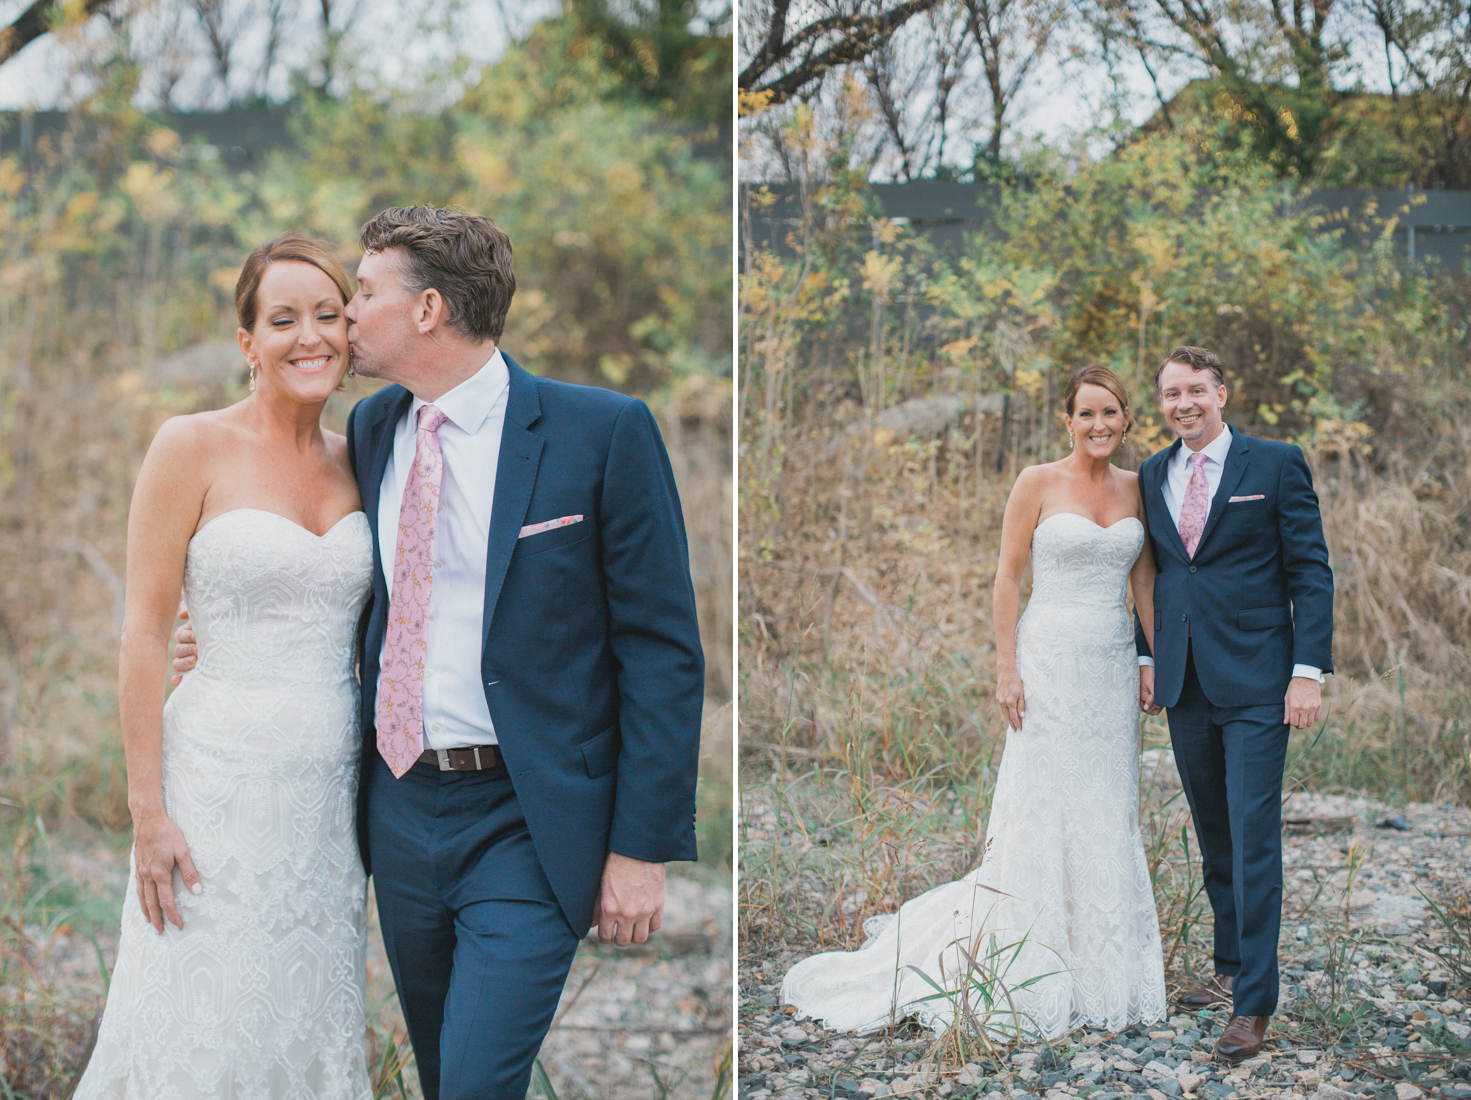 Hardin and Leigh Sullivan Wedding-12 side by side.jpg